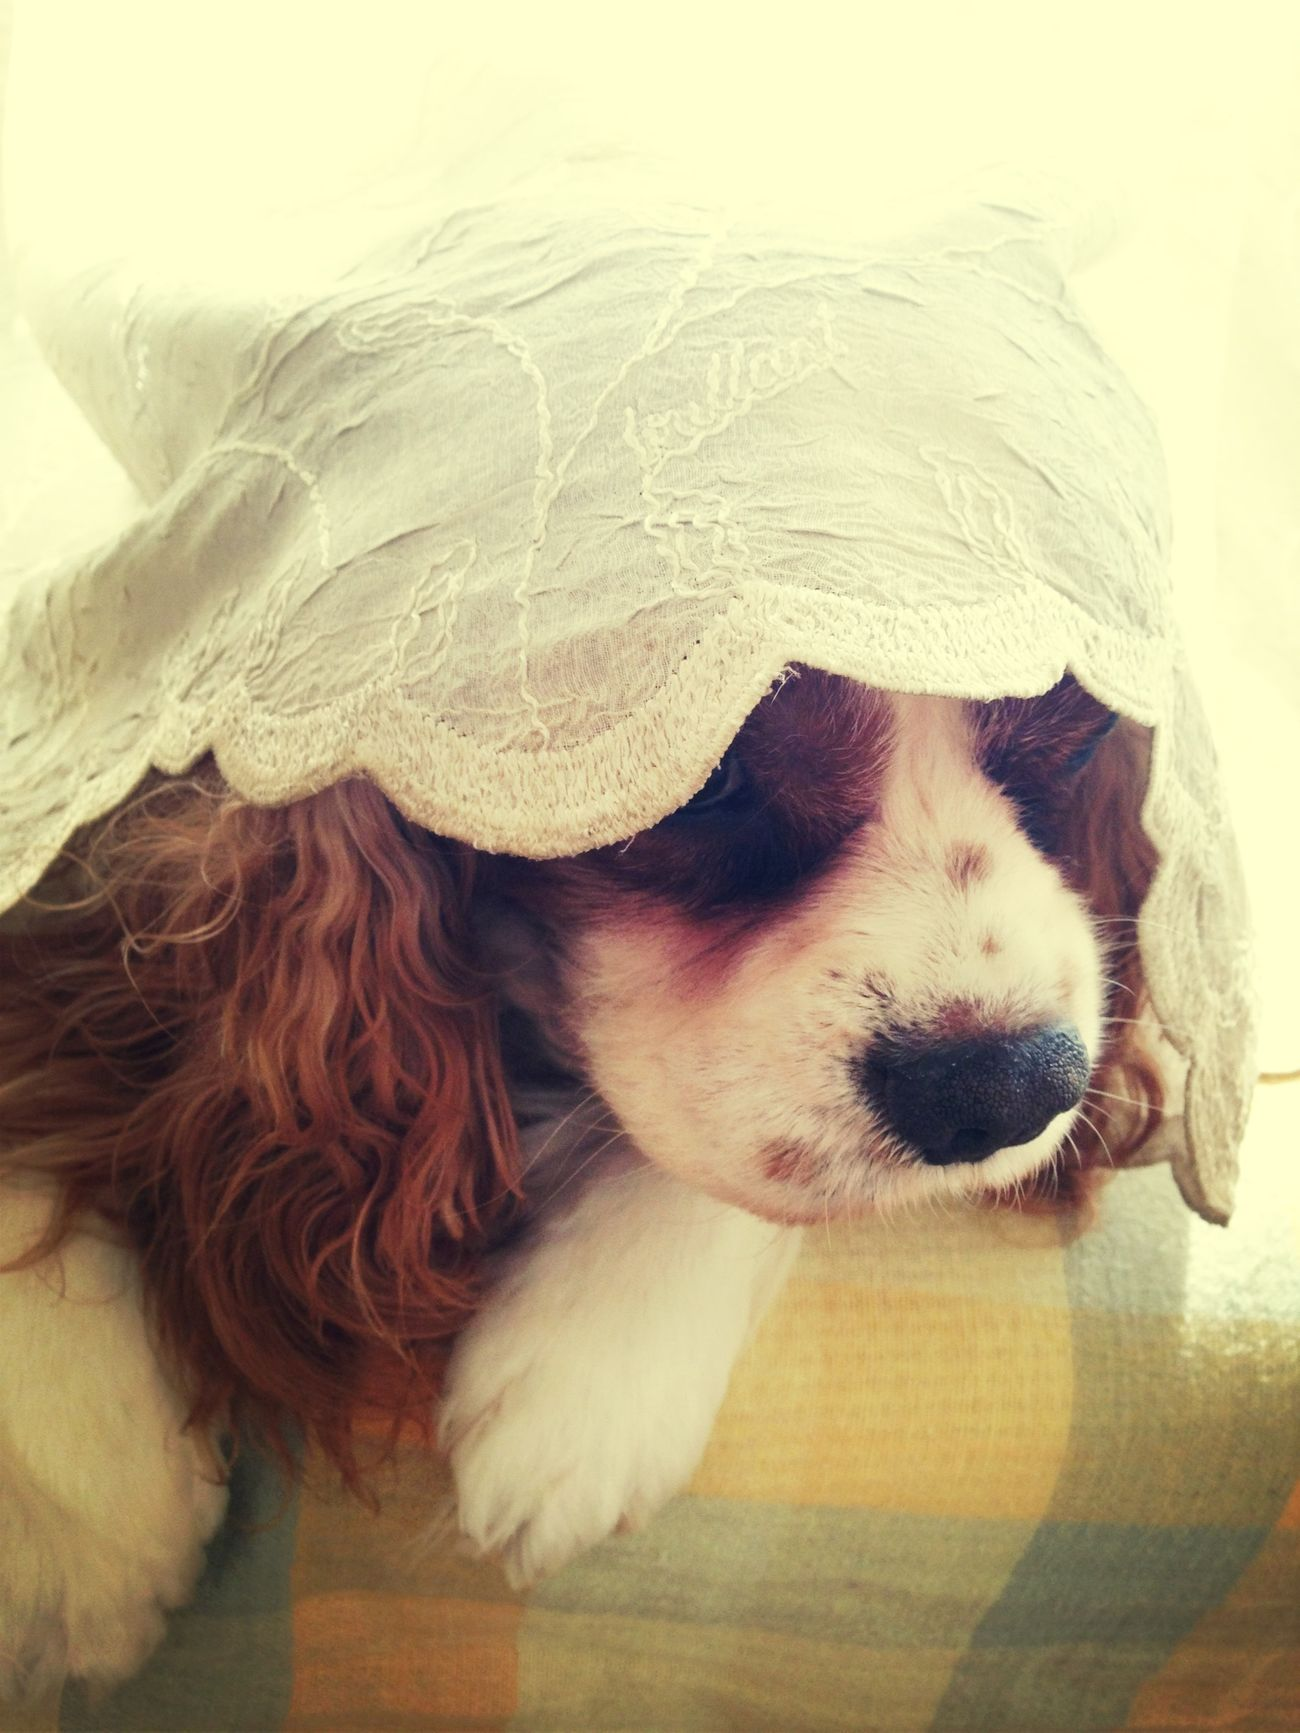 My Dog Cavalier King Charles Spaniel Hide And Seek I Found You